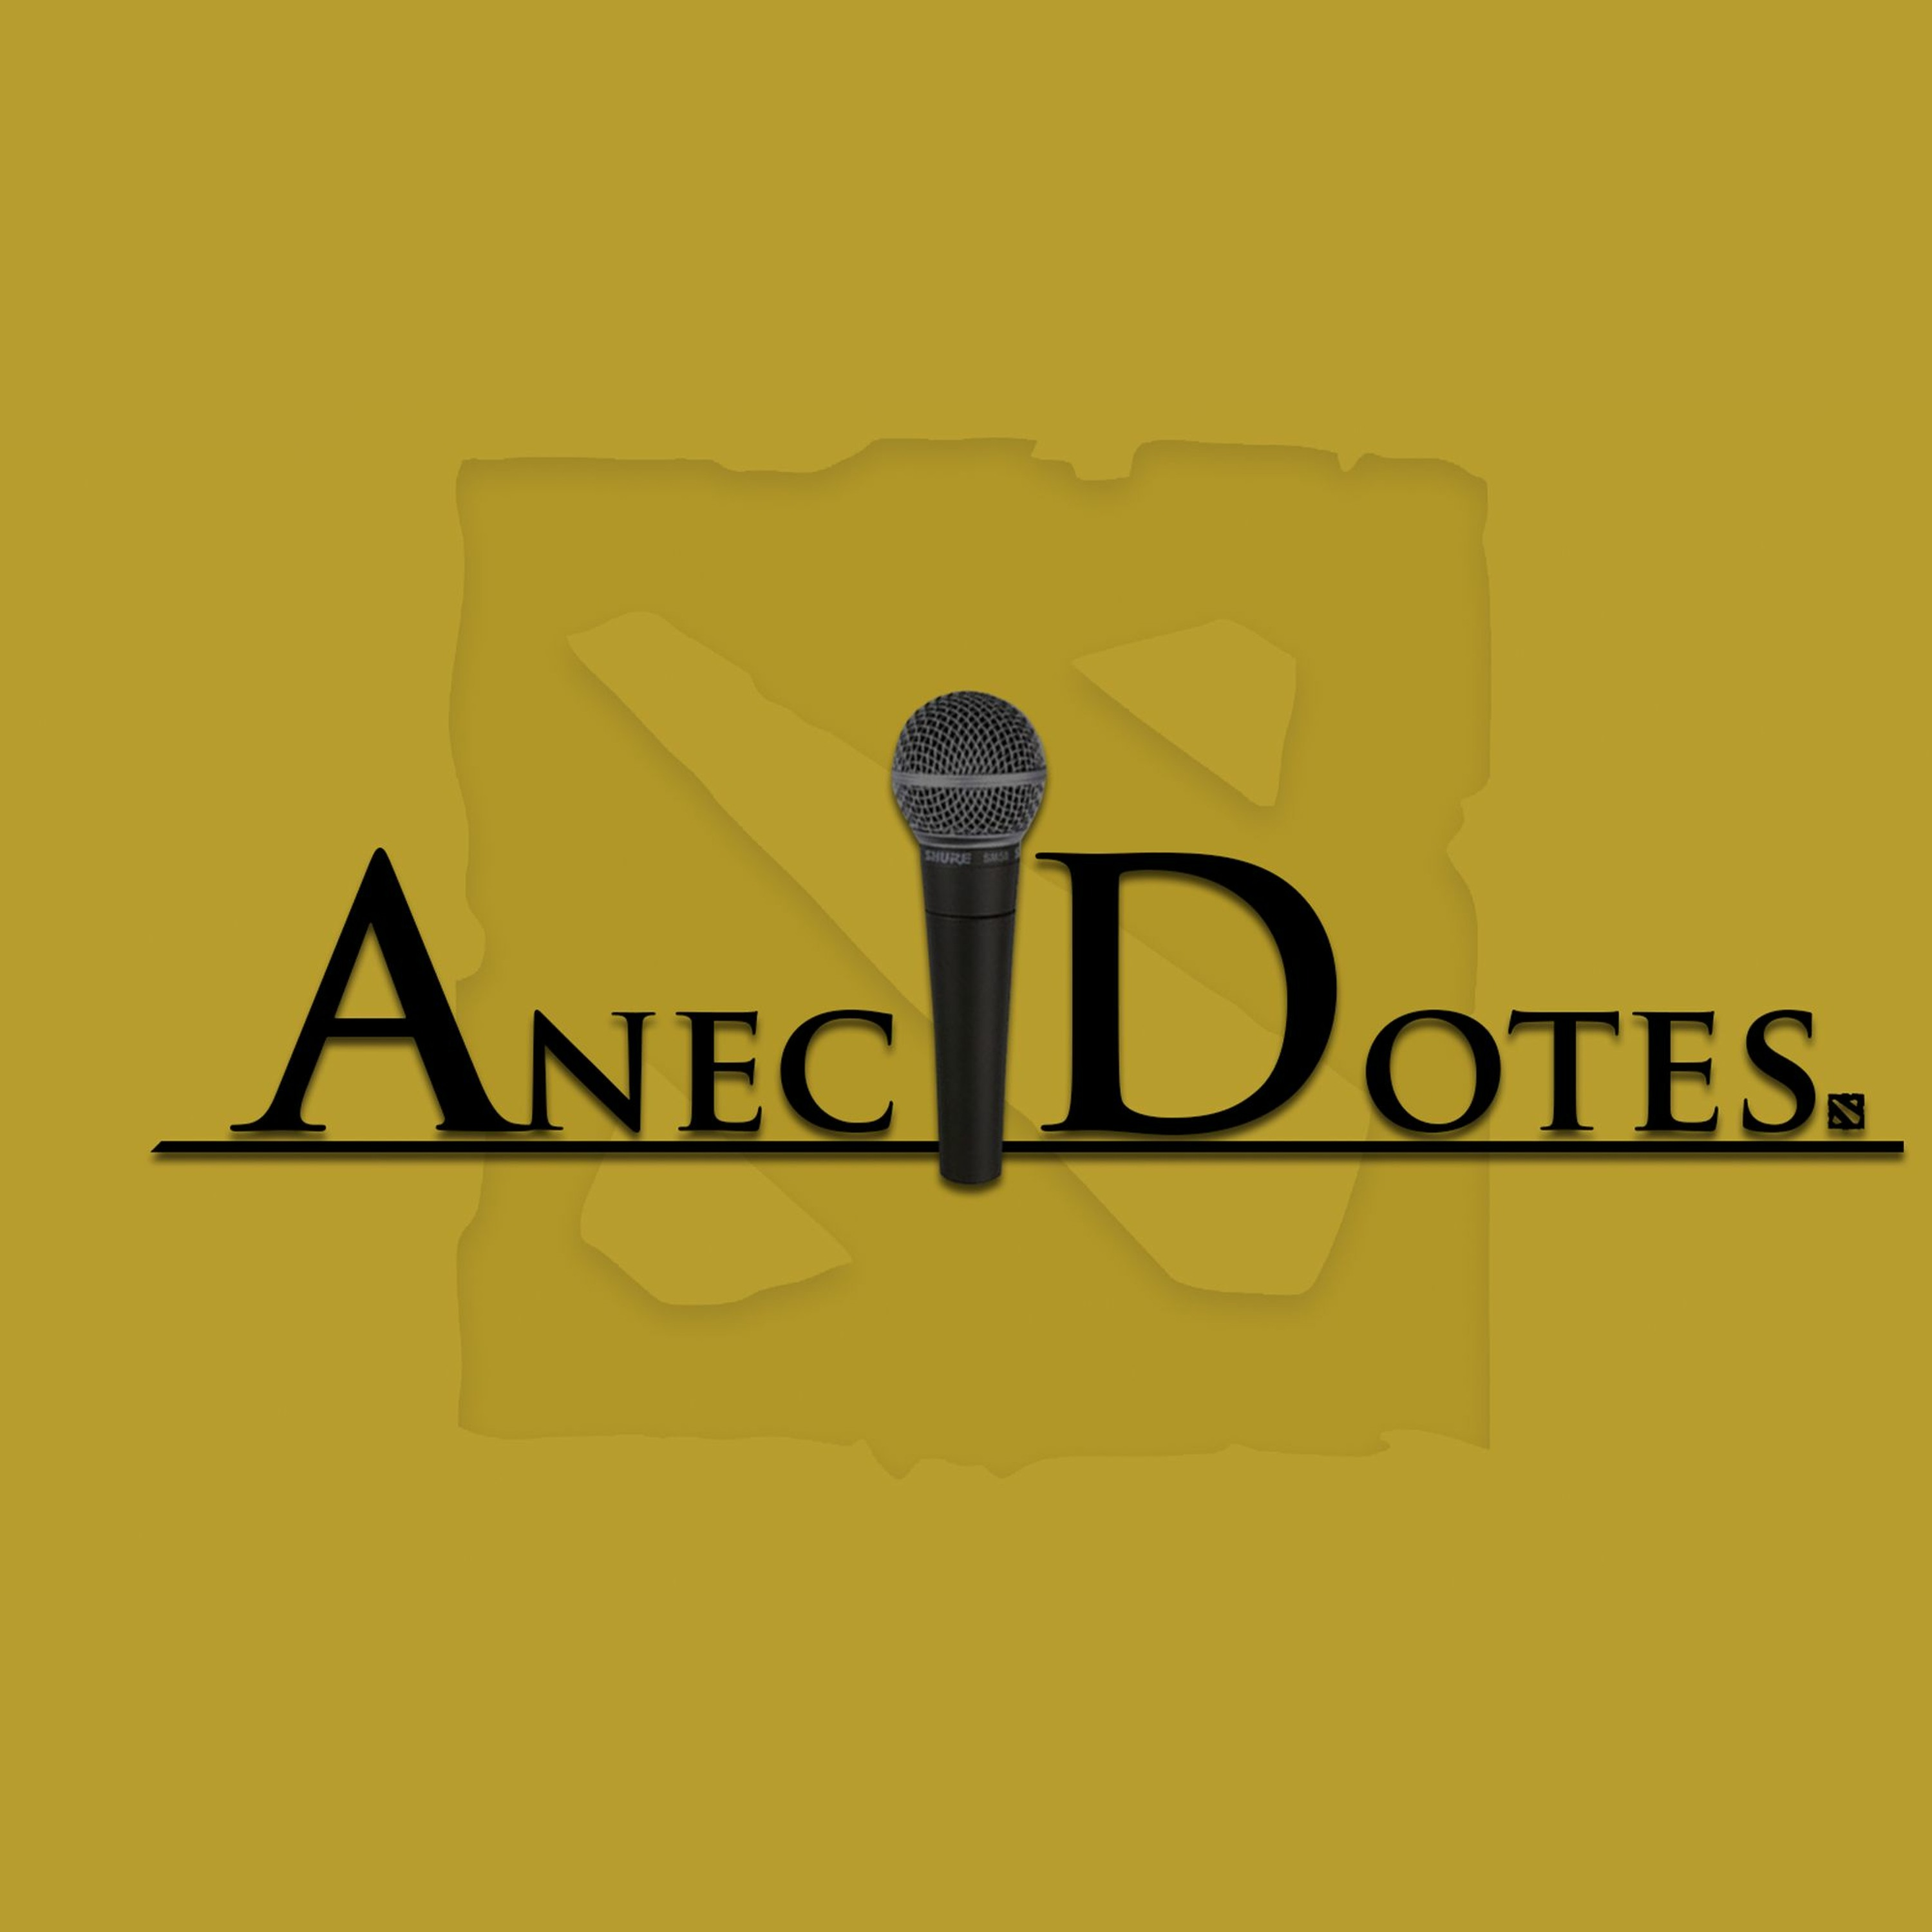 AnecDotes Episode 11 - The One About Becoming a Pro